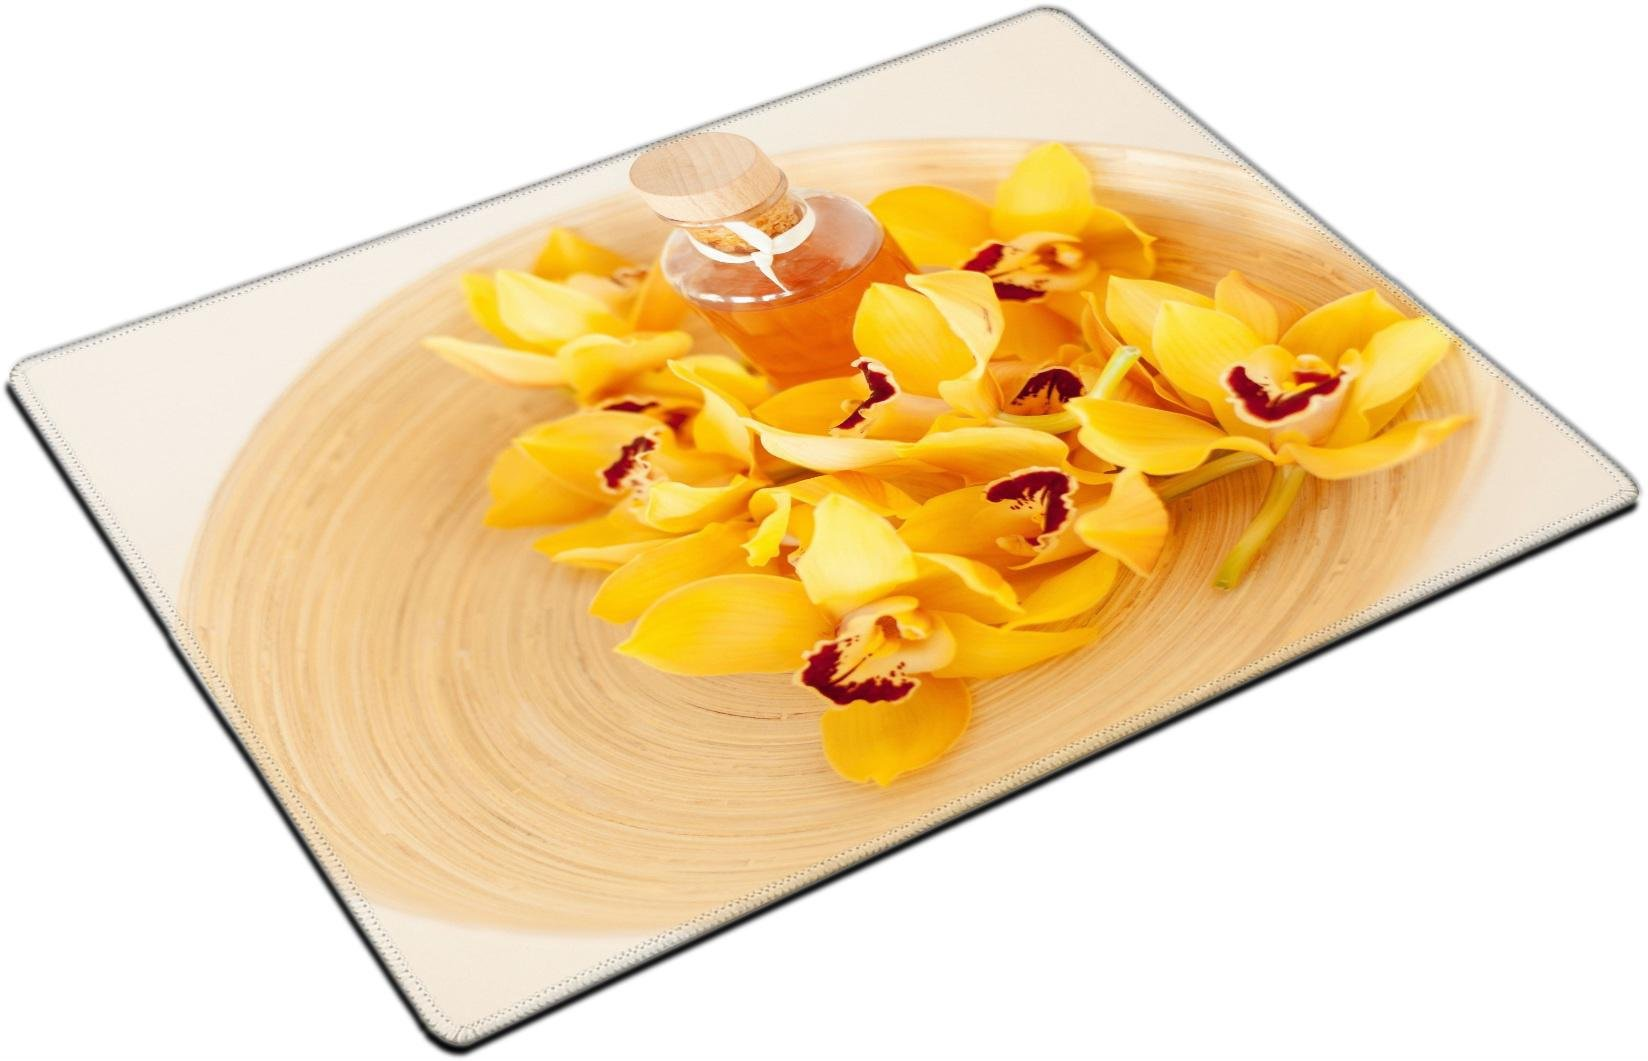 MSD Place Mat Non-Slip Natural Rubber Desk Pads design 25459253 llector spa health and beauty concept closeup of wooden bowl with orchid flowers and